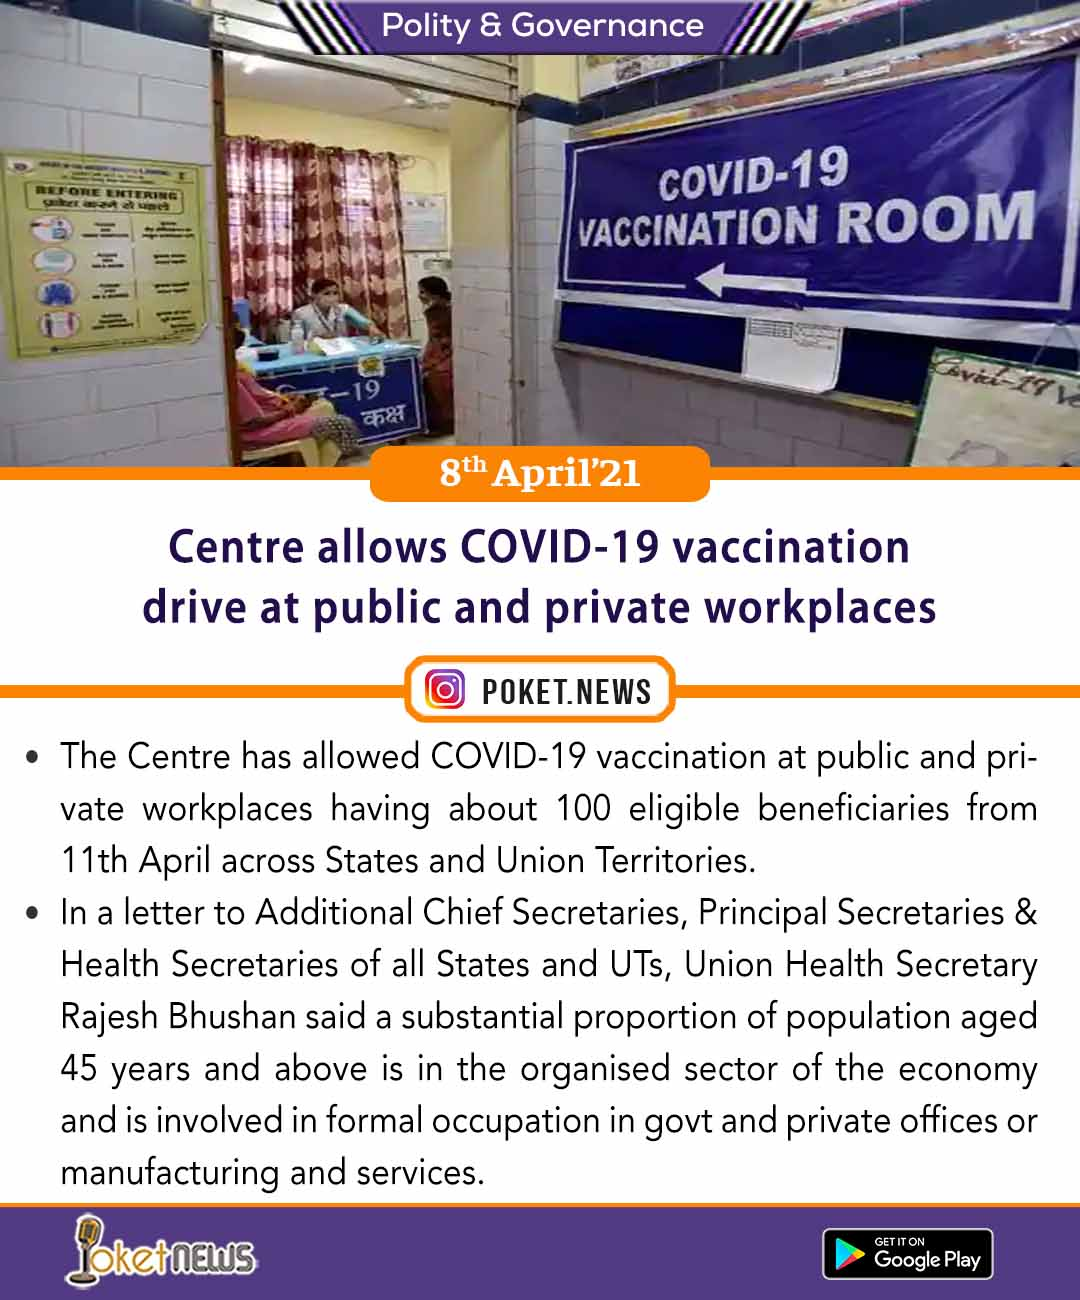 Centre allows COVID-19 vaccination drive at public and private workplaces